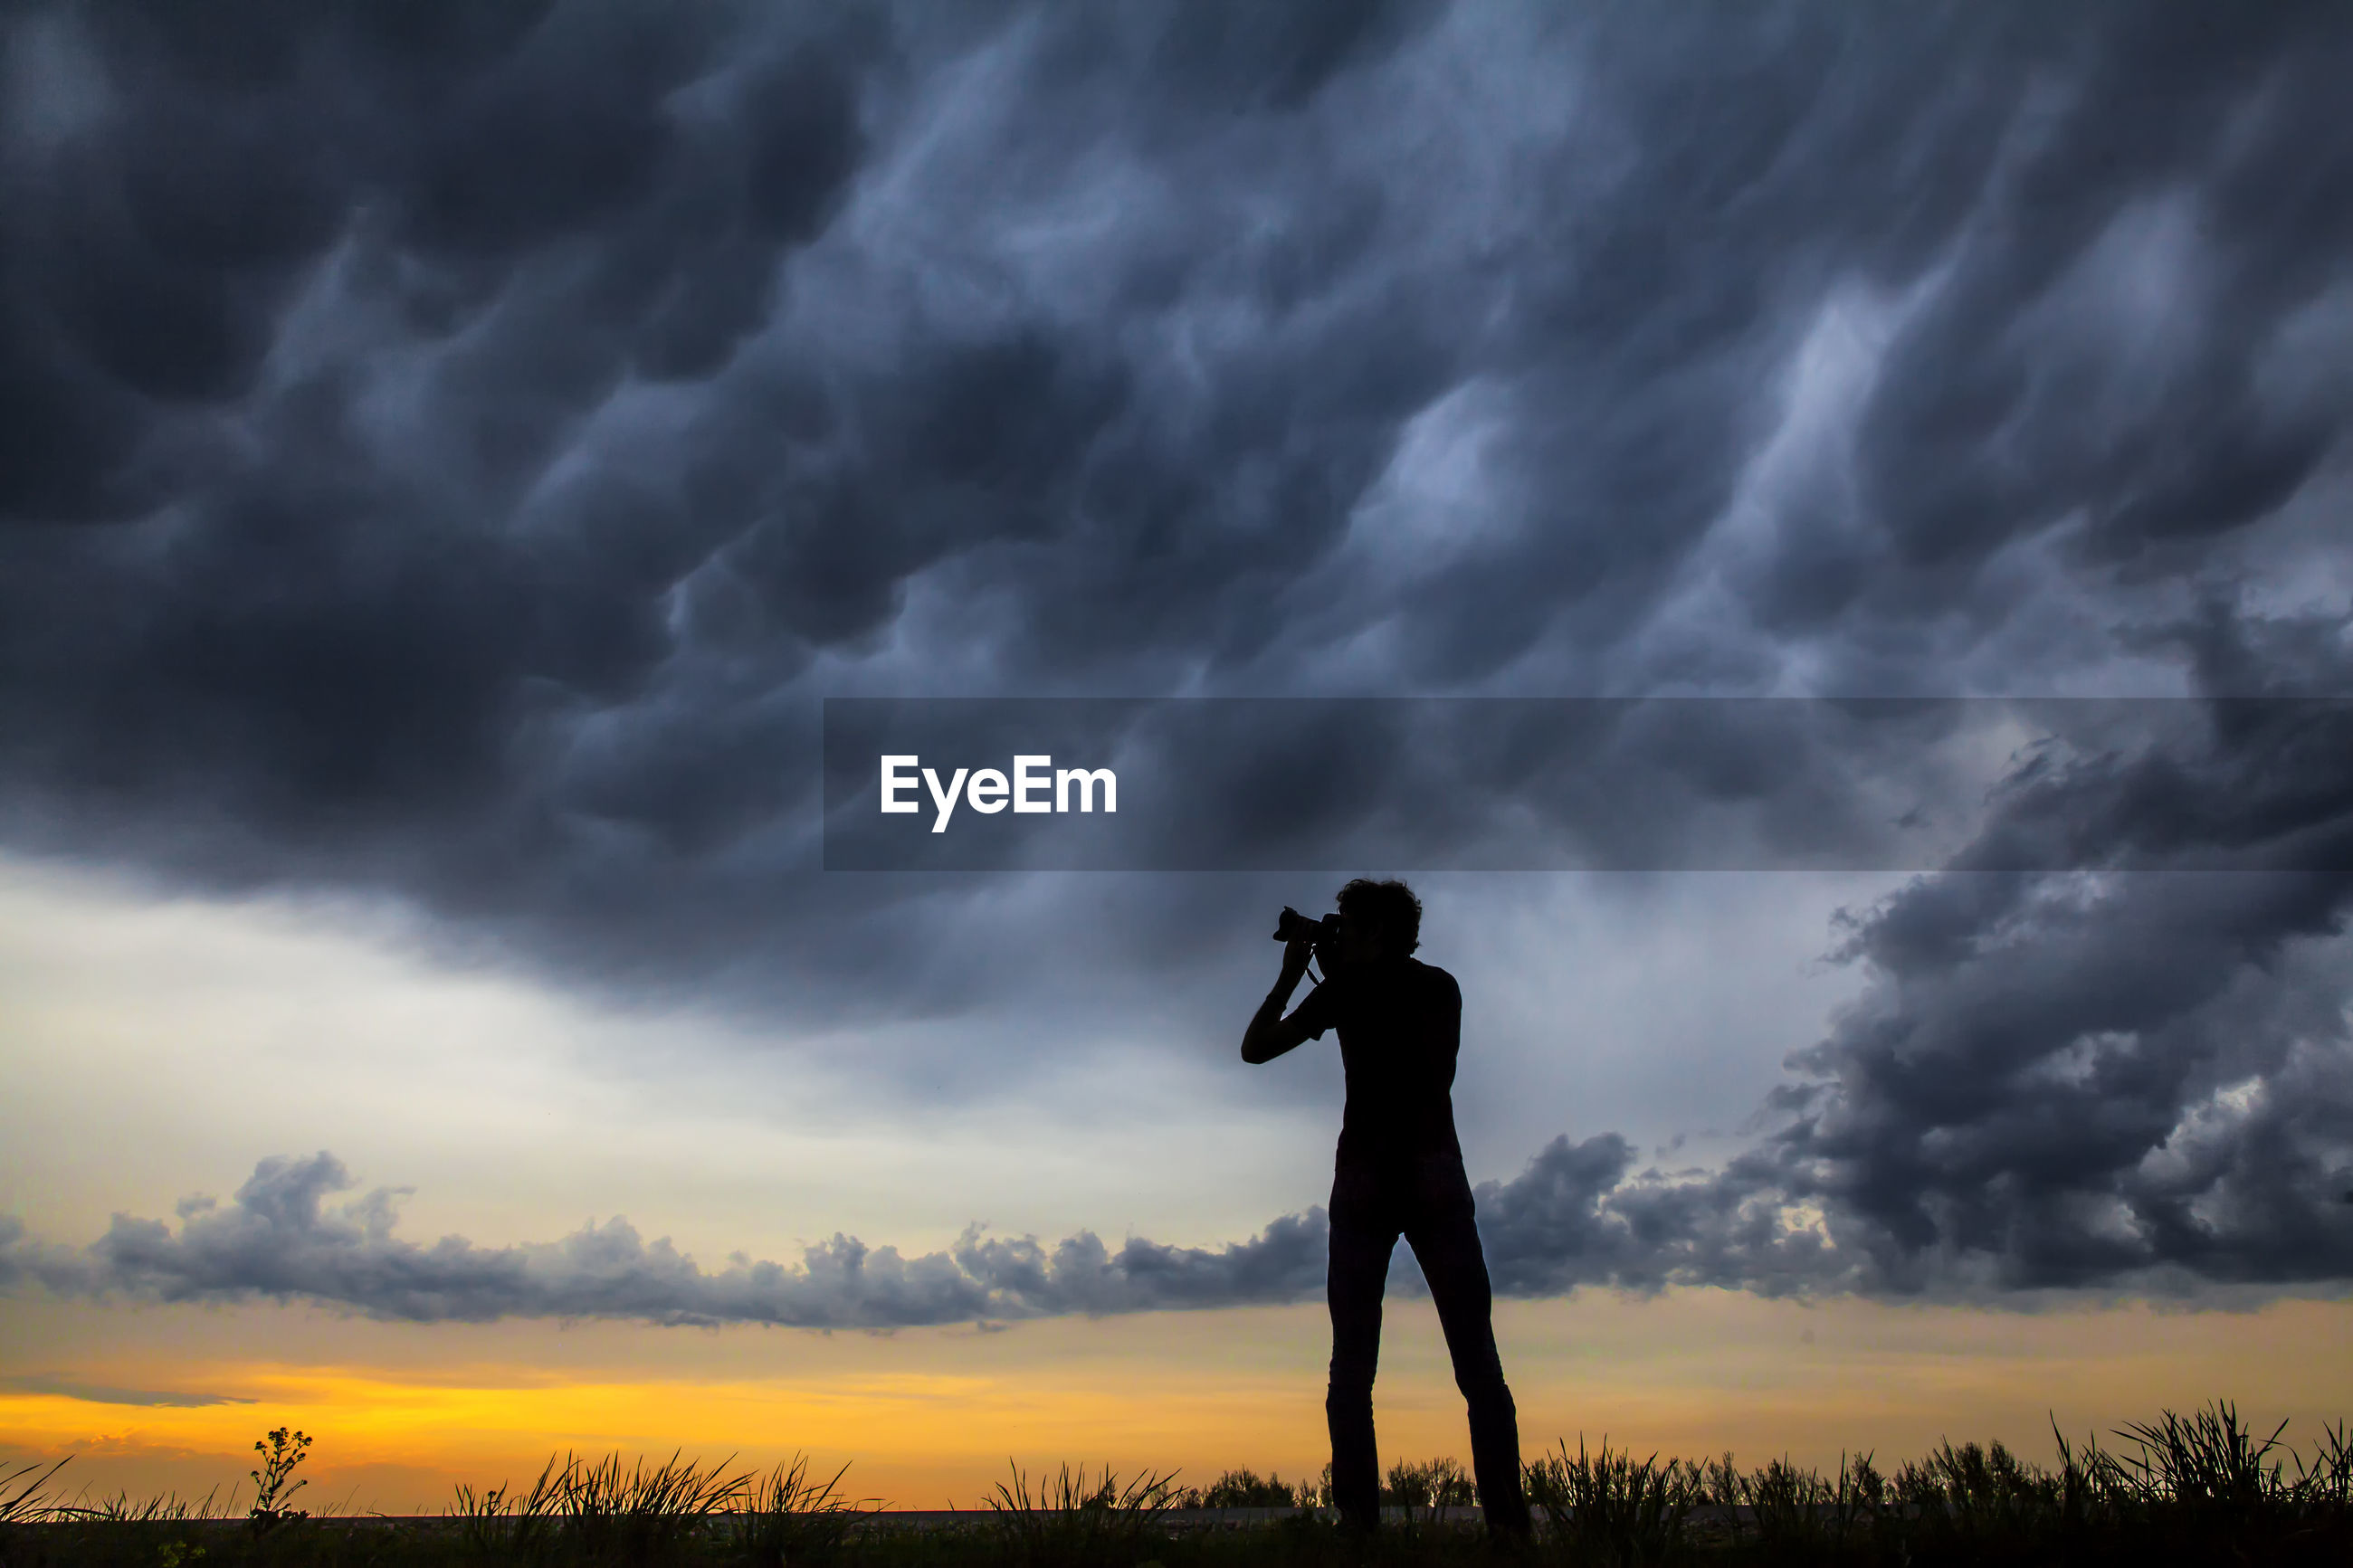 Silhouette man on field against storm clouds during sunset